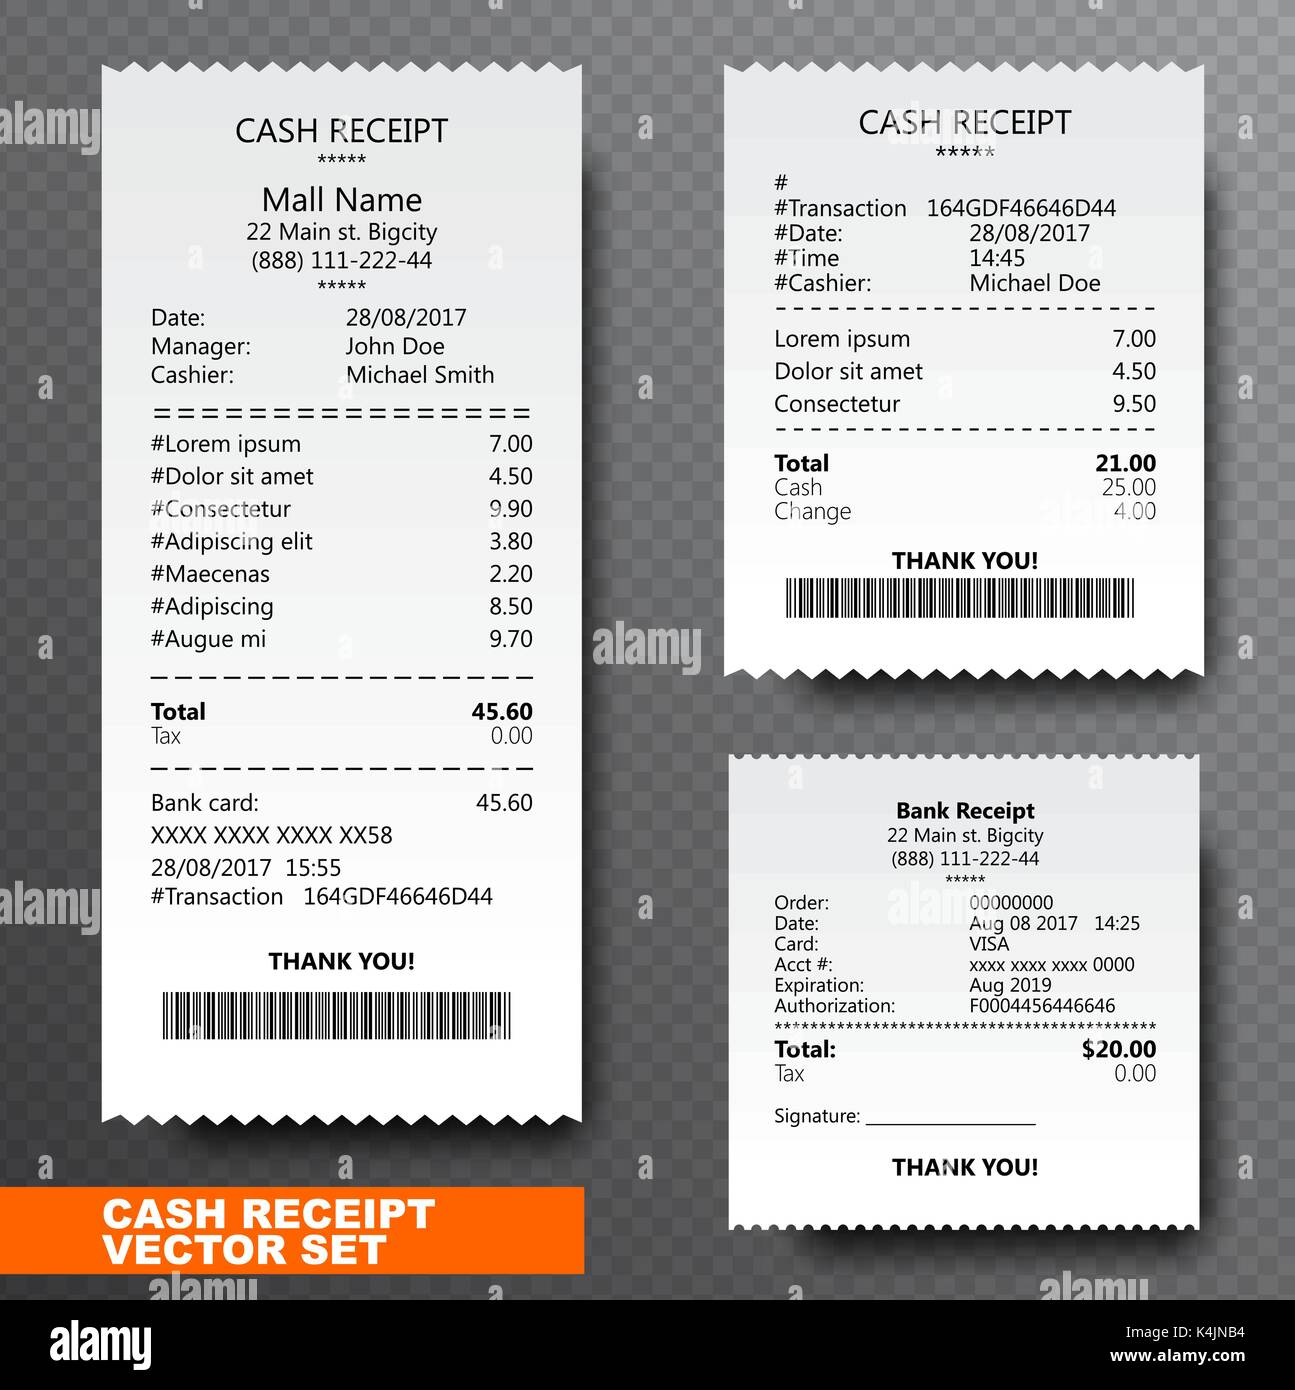 157763848 Paper Art On Check Financial-check amp; Stock Transparent Set Illustration Alamy Isolated Vector And - Image Reciept